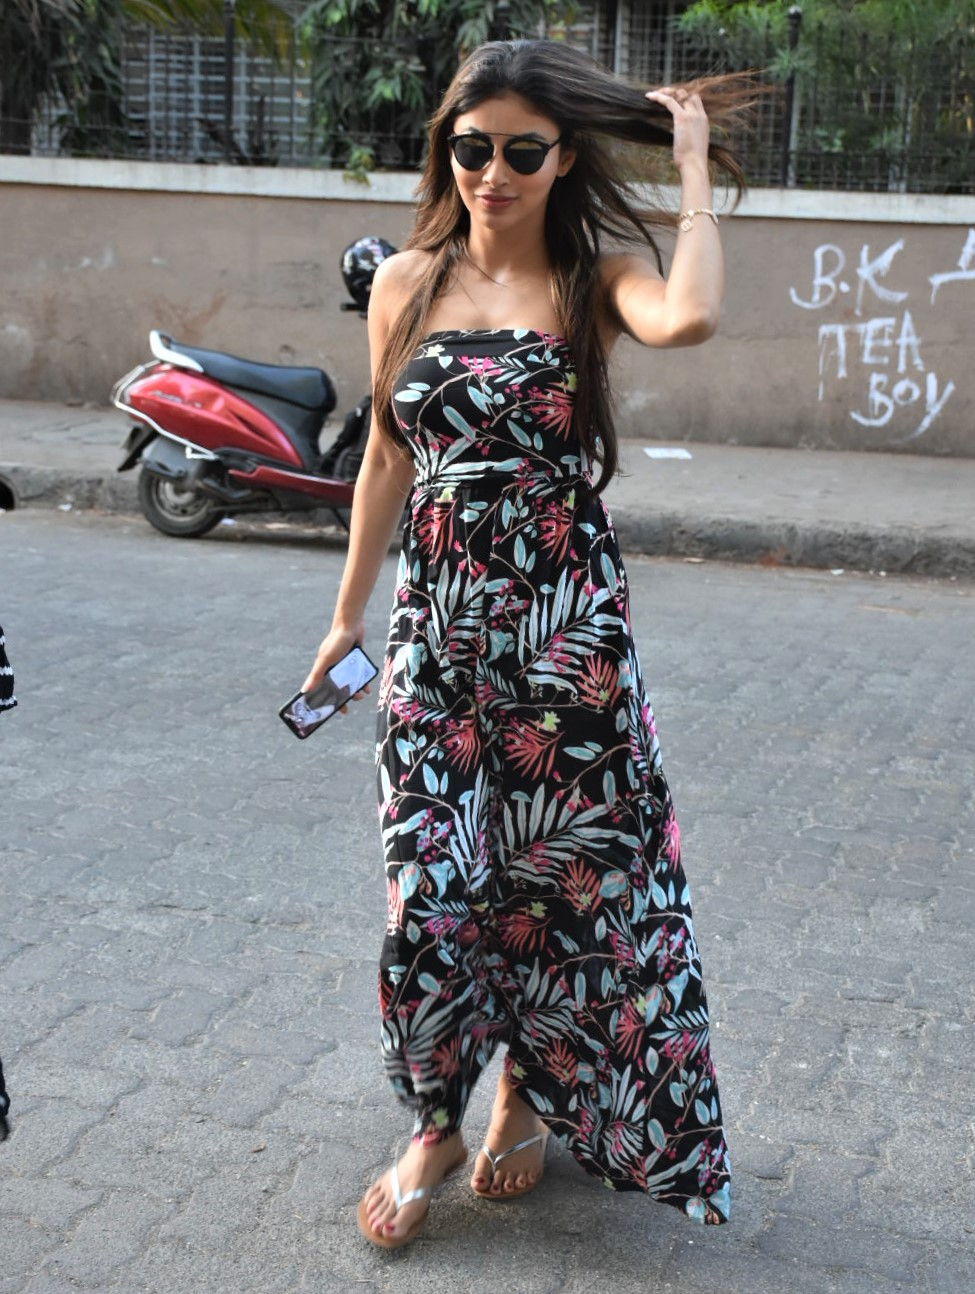 Mouni Roy Turns Up the Heat in a Summery Maxi Dress